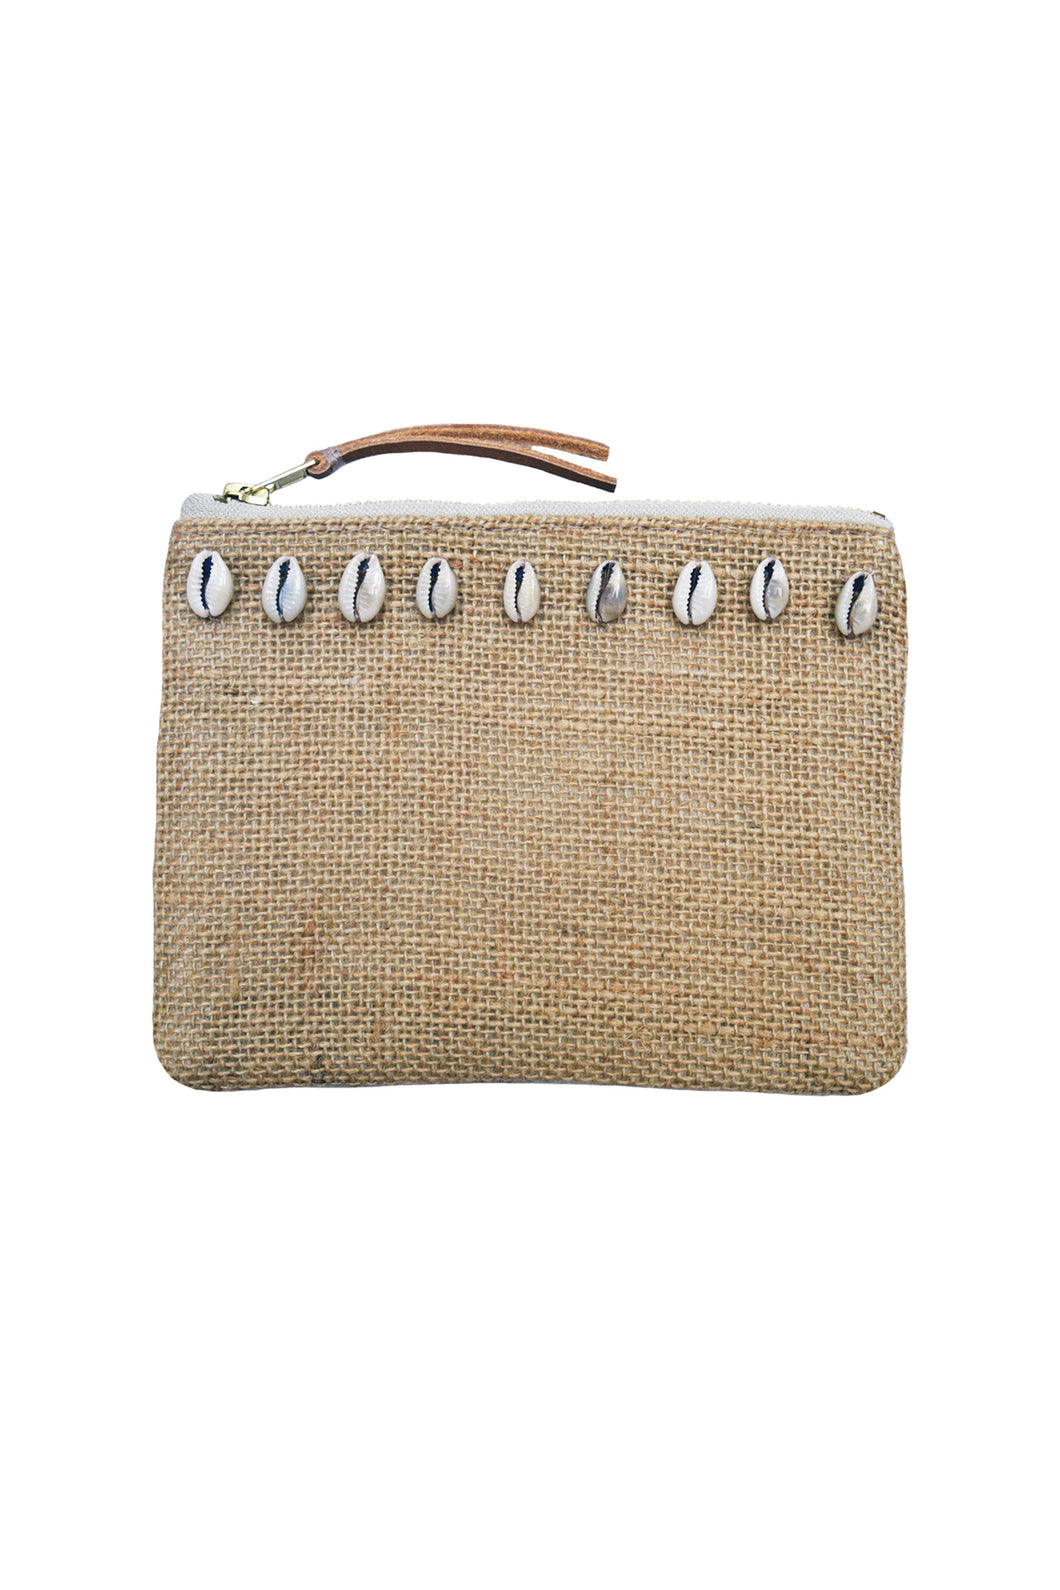 TRAVELLER JUTE COIN PURSE - NATURAL